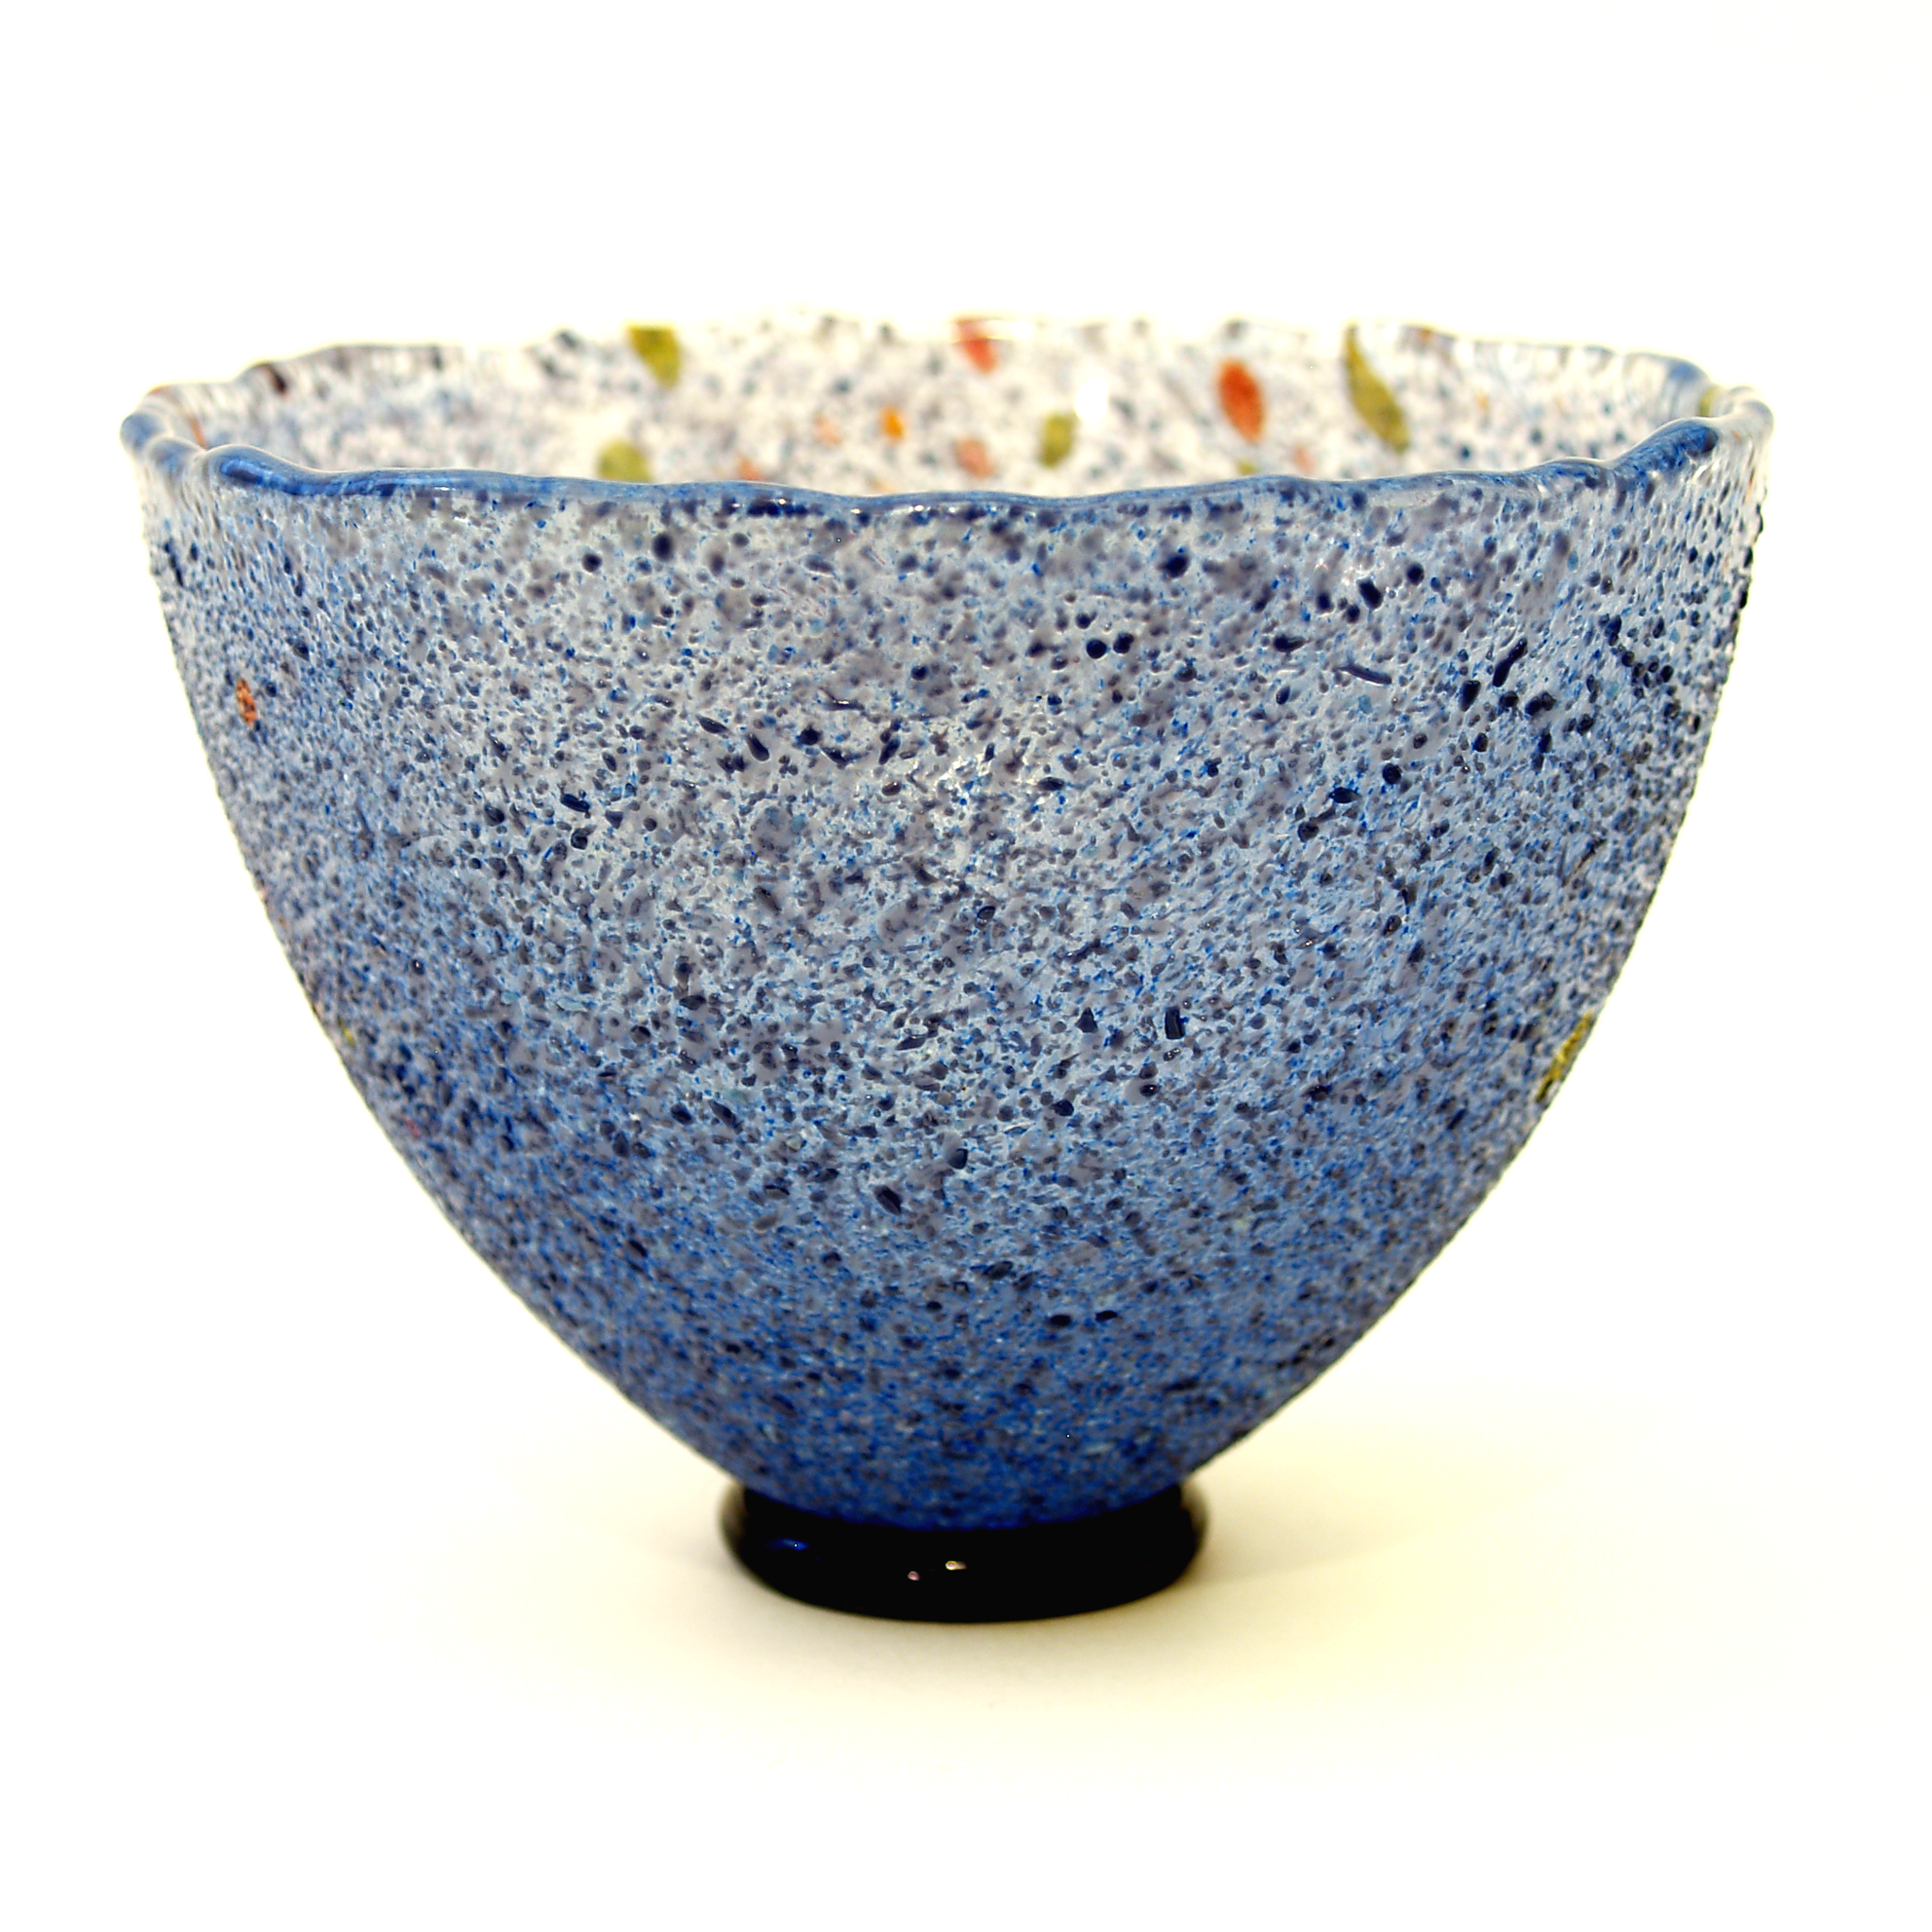 kosta boda artist collection glass bowl dark blue from melange  - roll over large image to magnify click large image to zoom